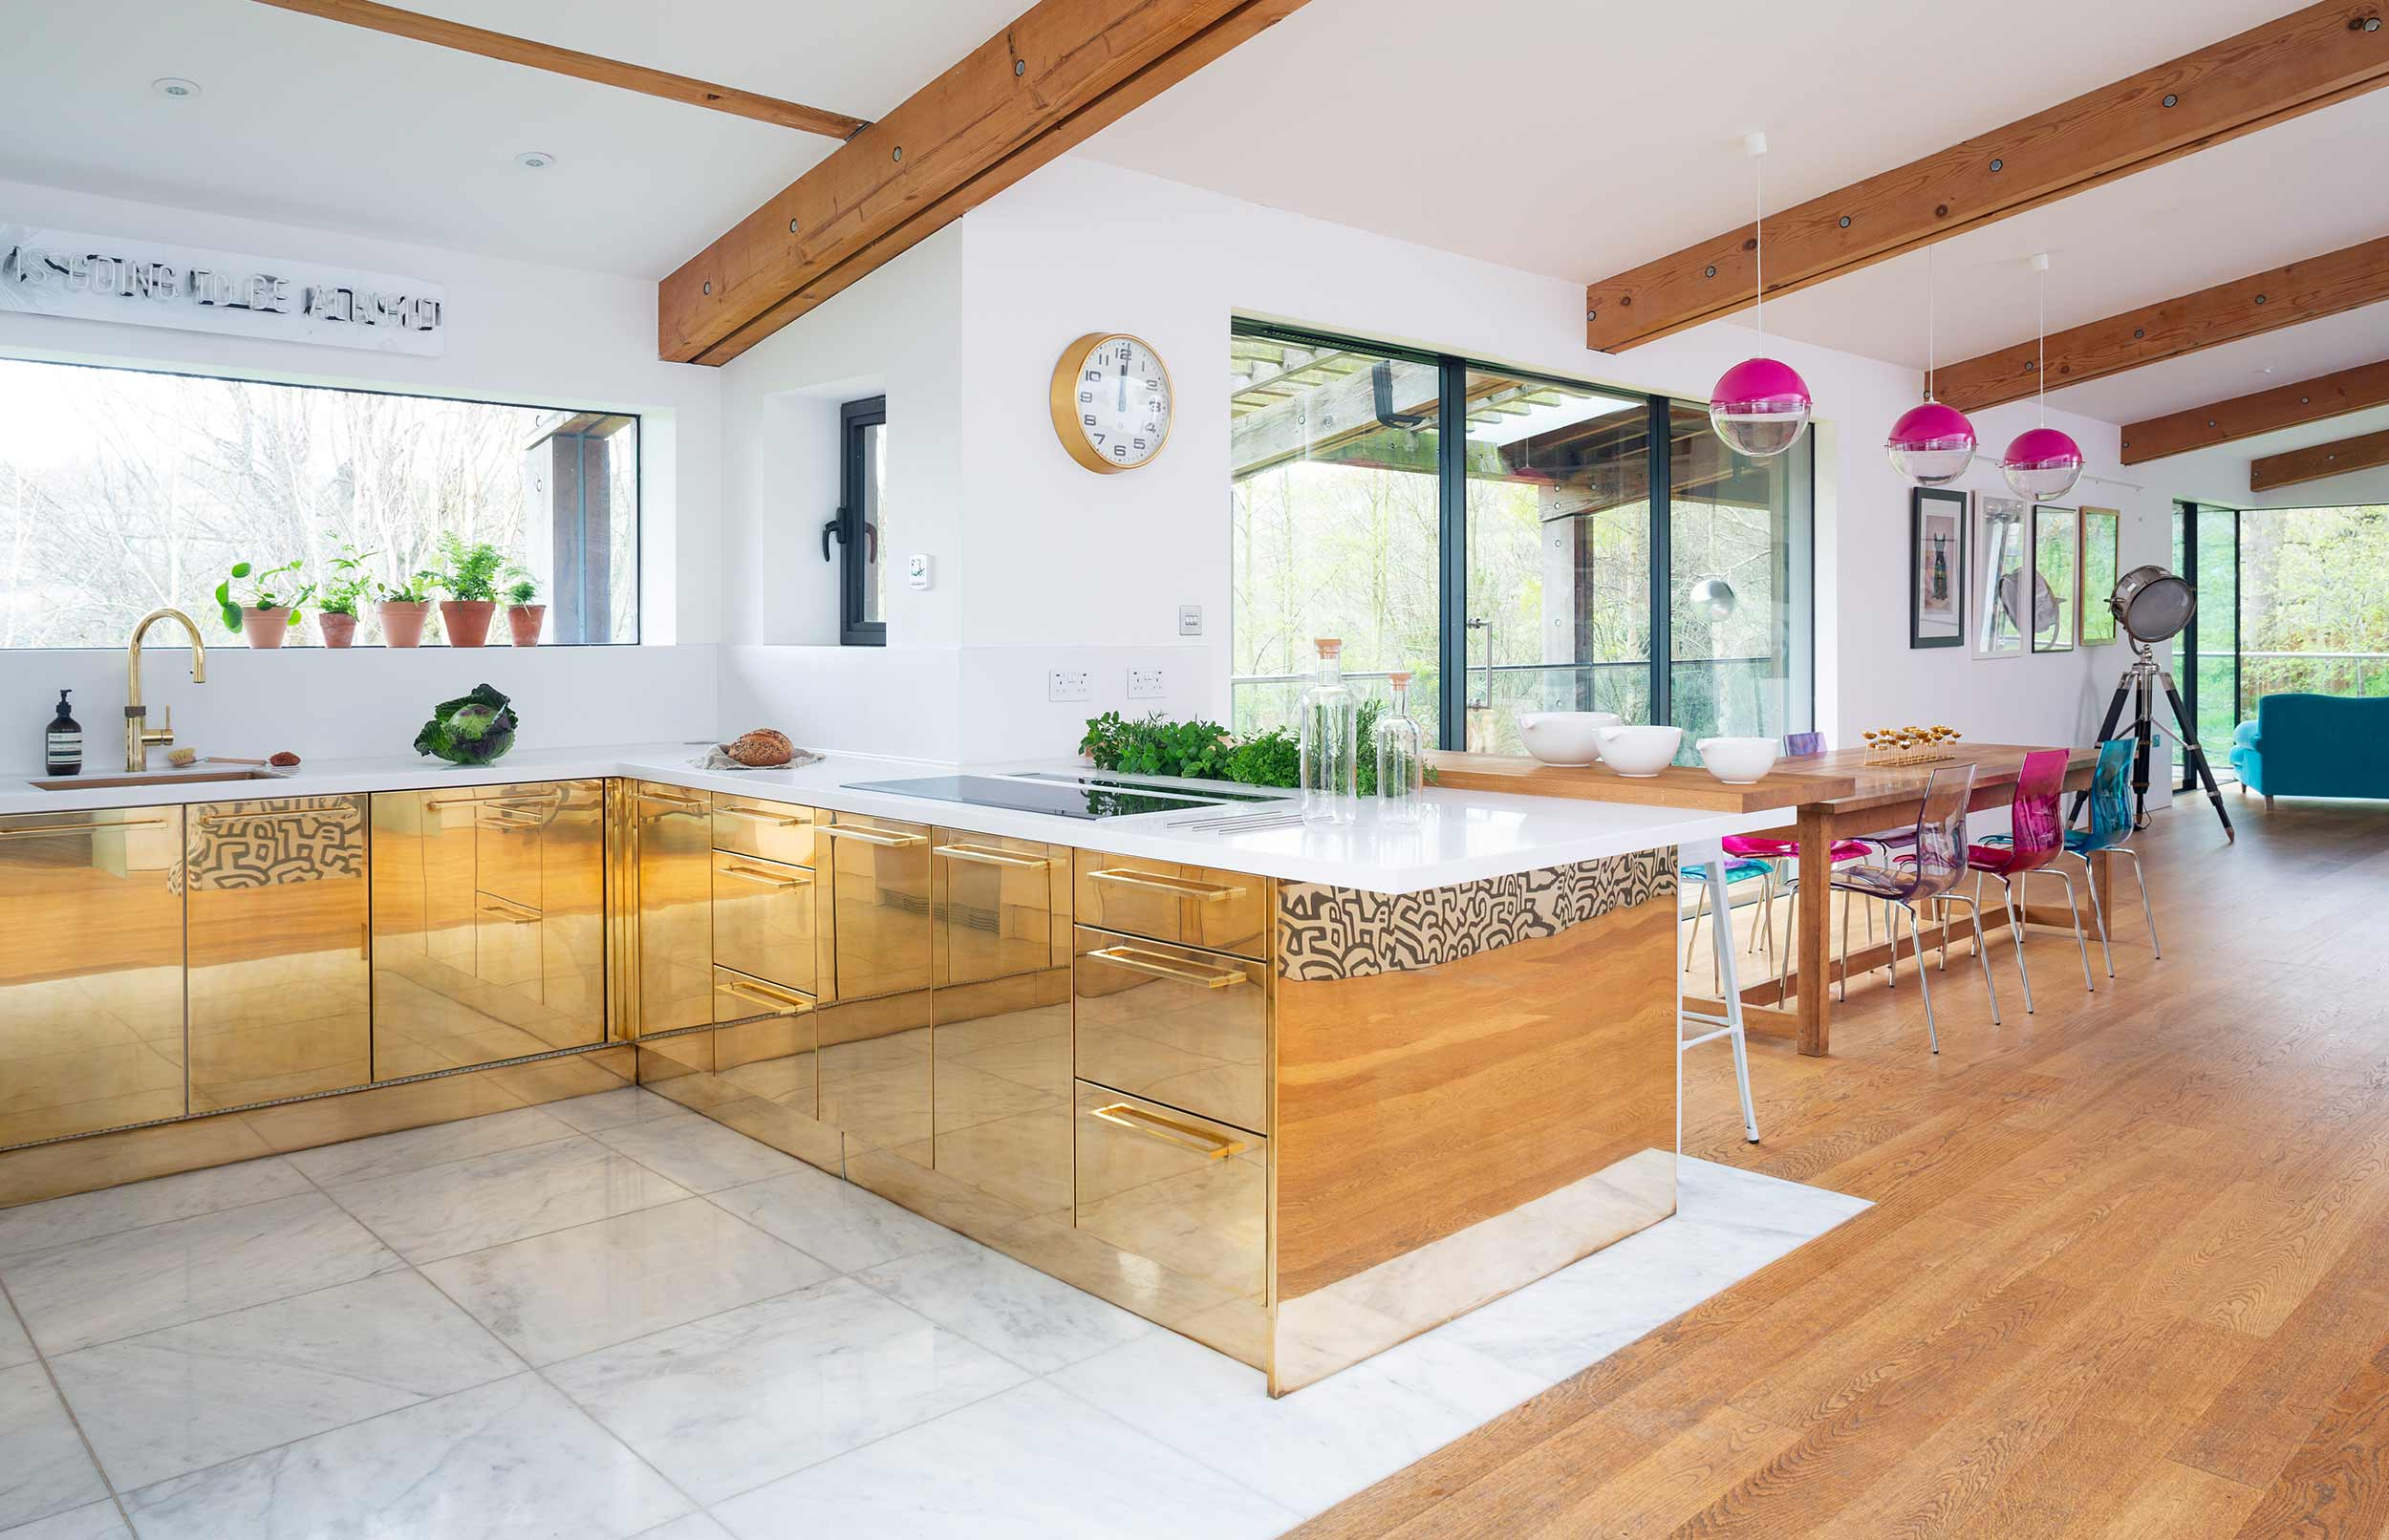 Bespoke characterful kitchen hero